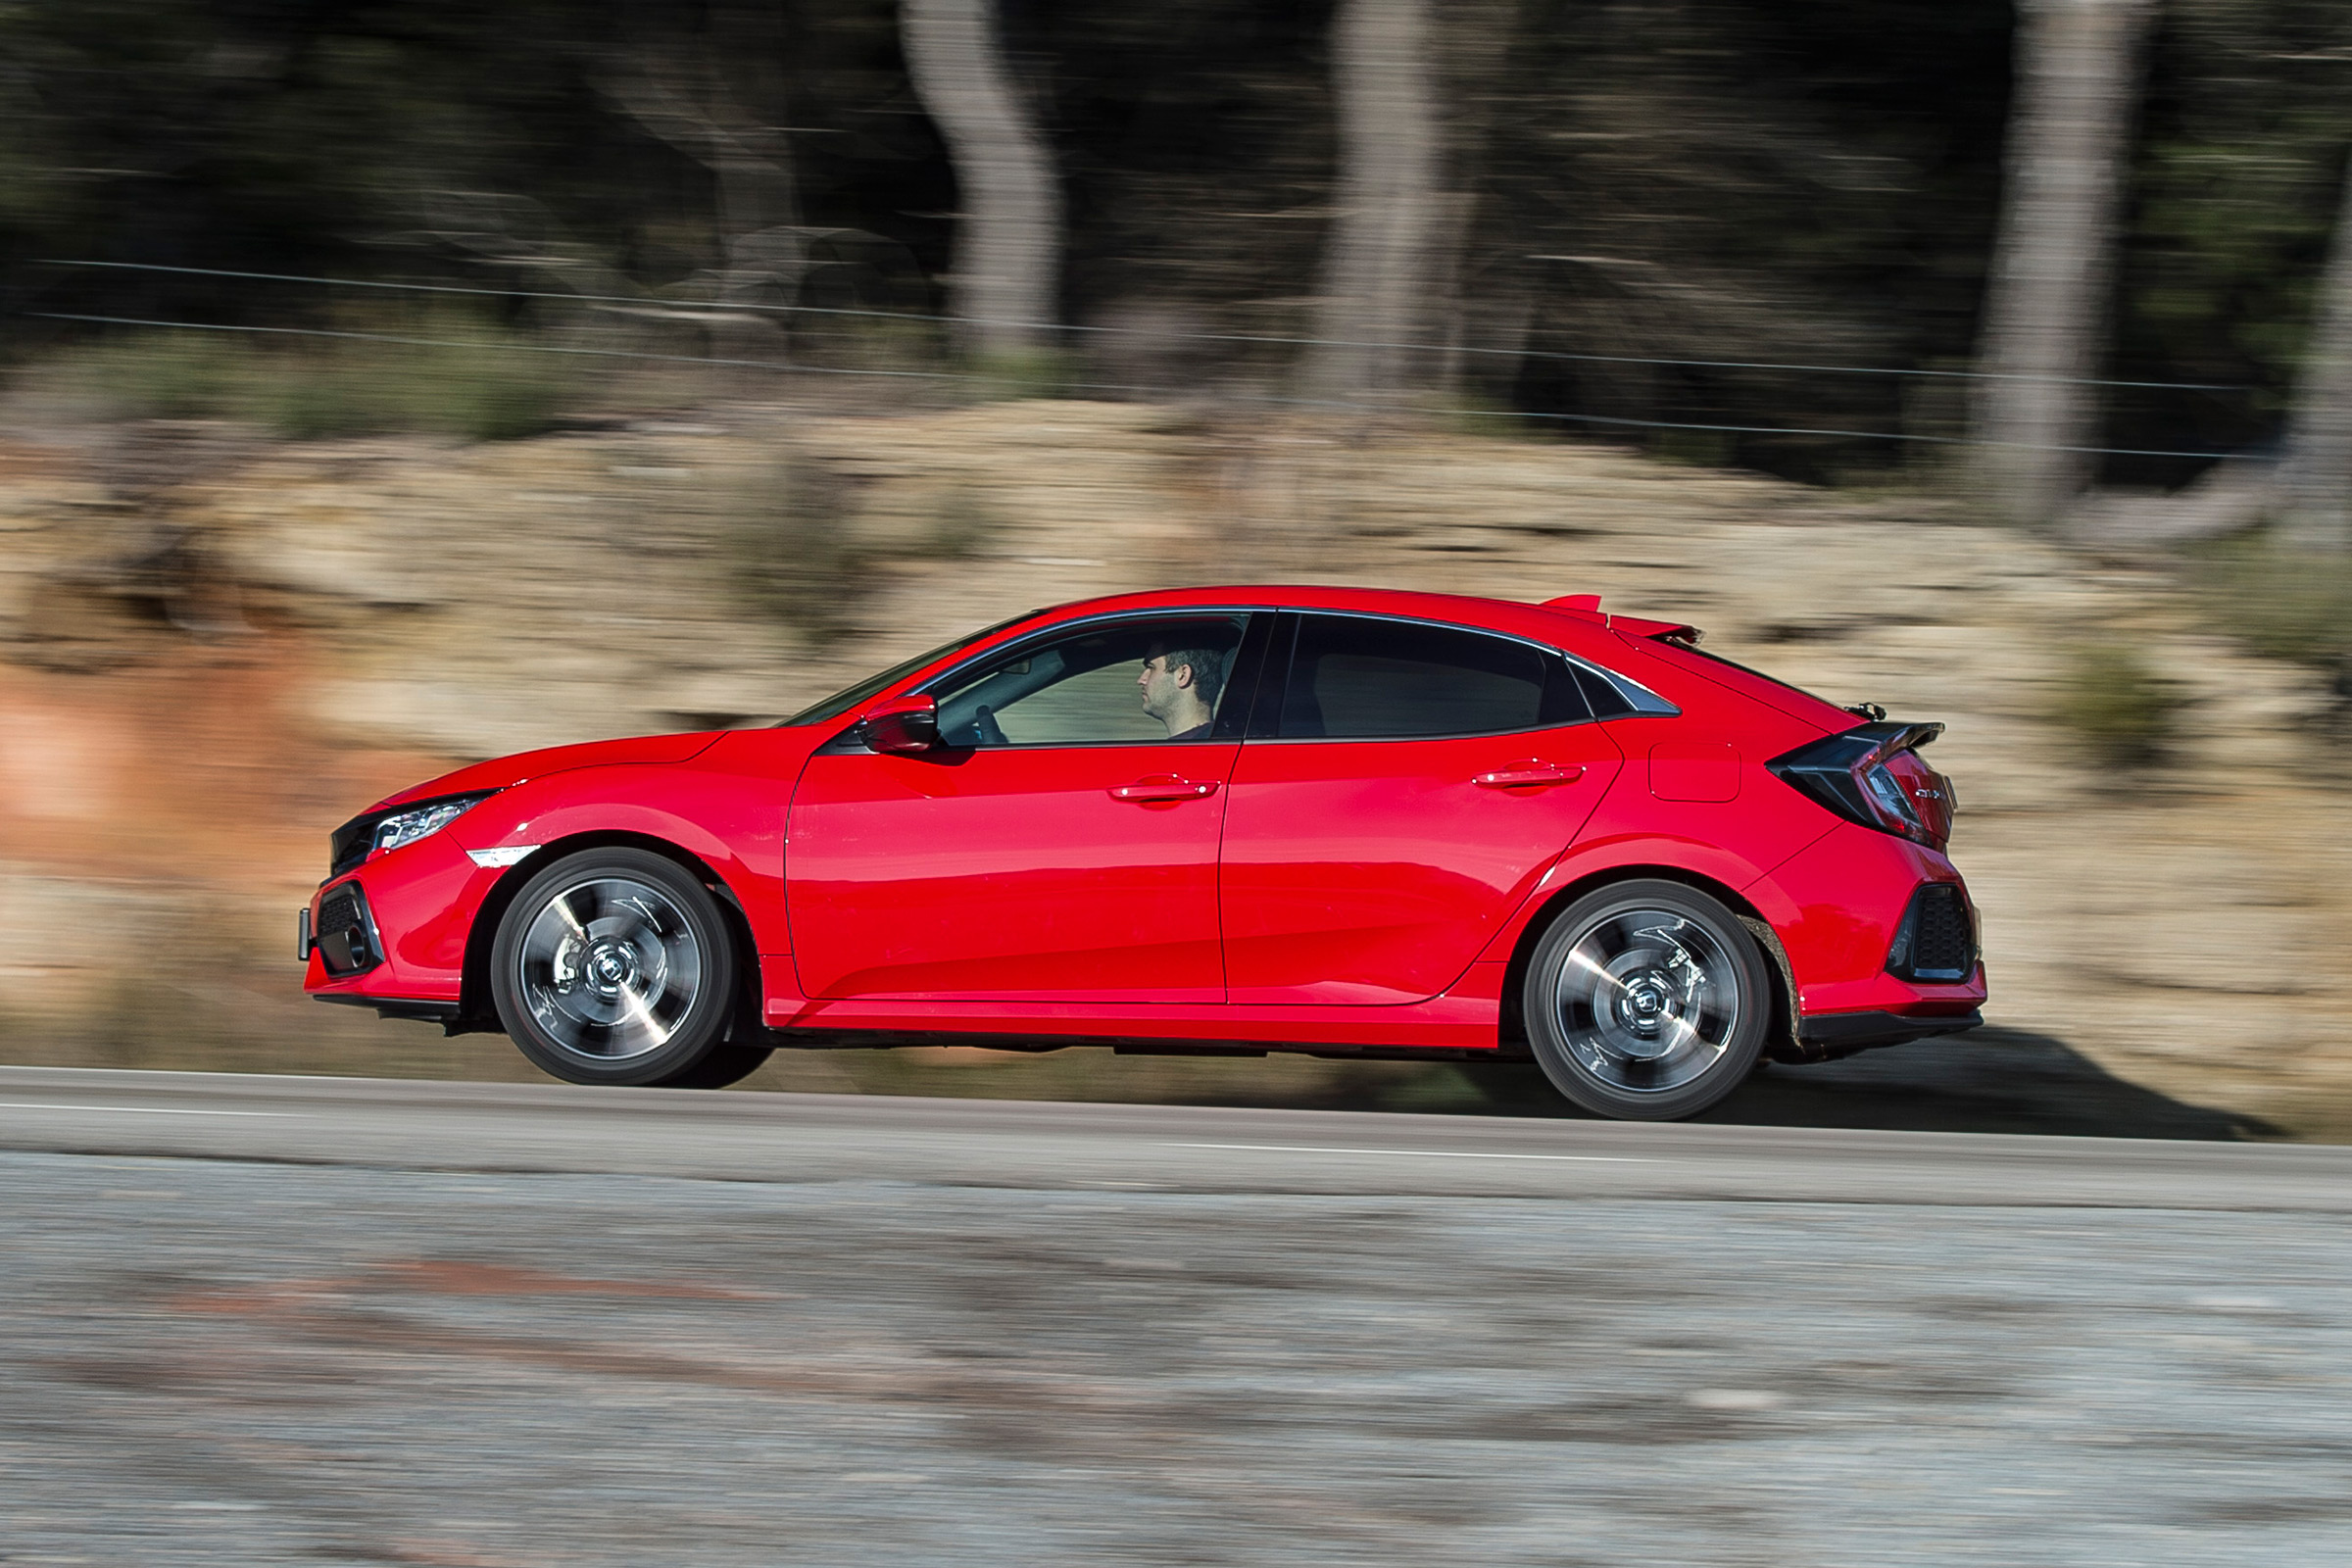 2017 Honda Civic Hatchback Red Test Drive Side View (Photo 33 of 34)